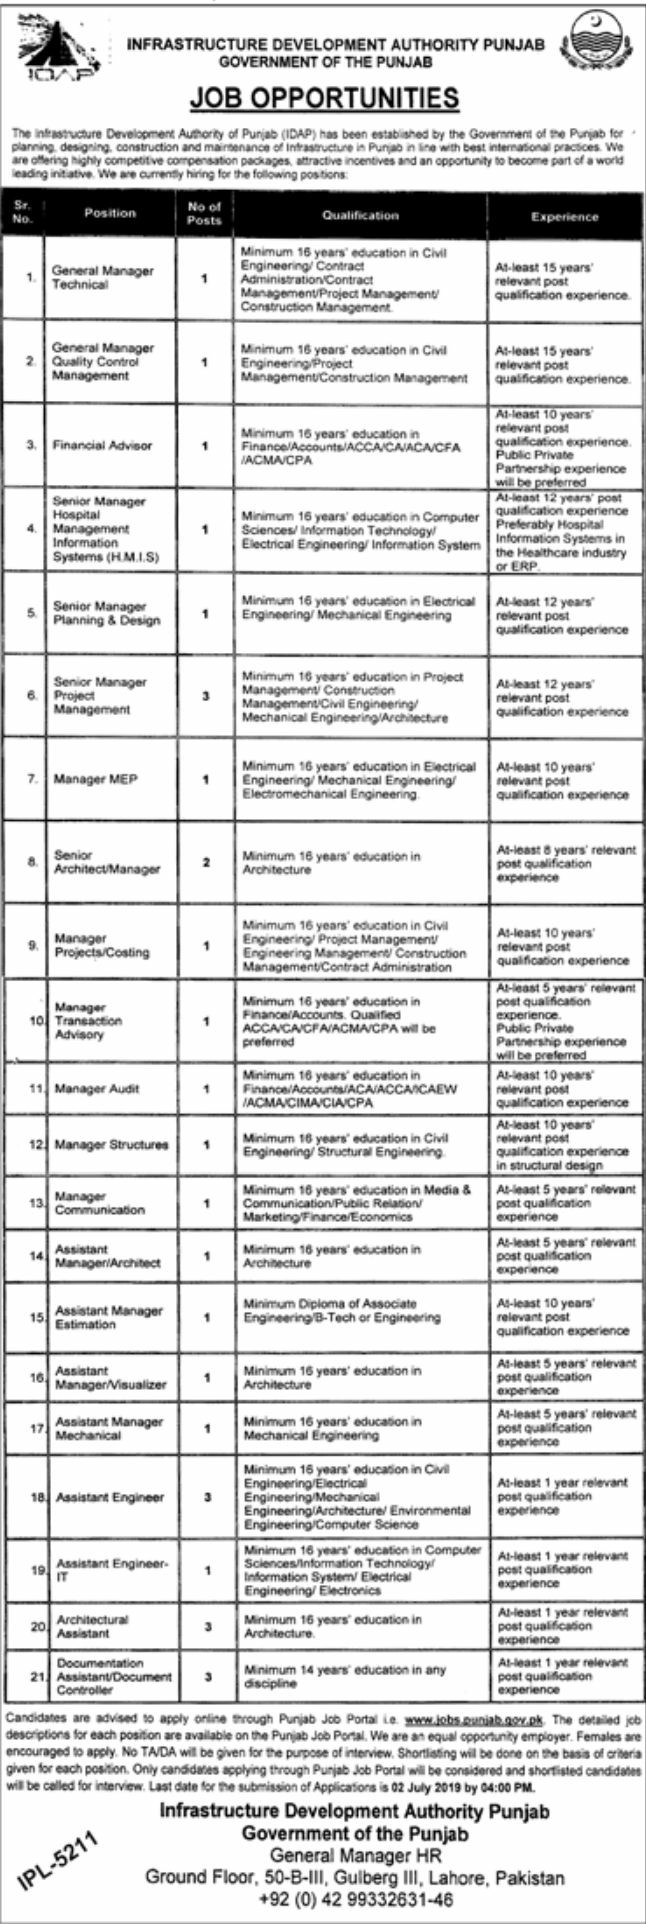 Infrastructure Development Authority Punjab Government of the Punjab Jobs